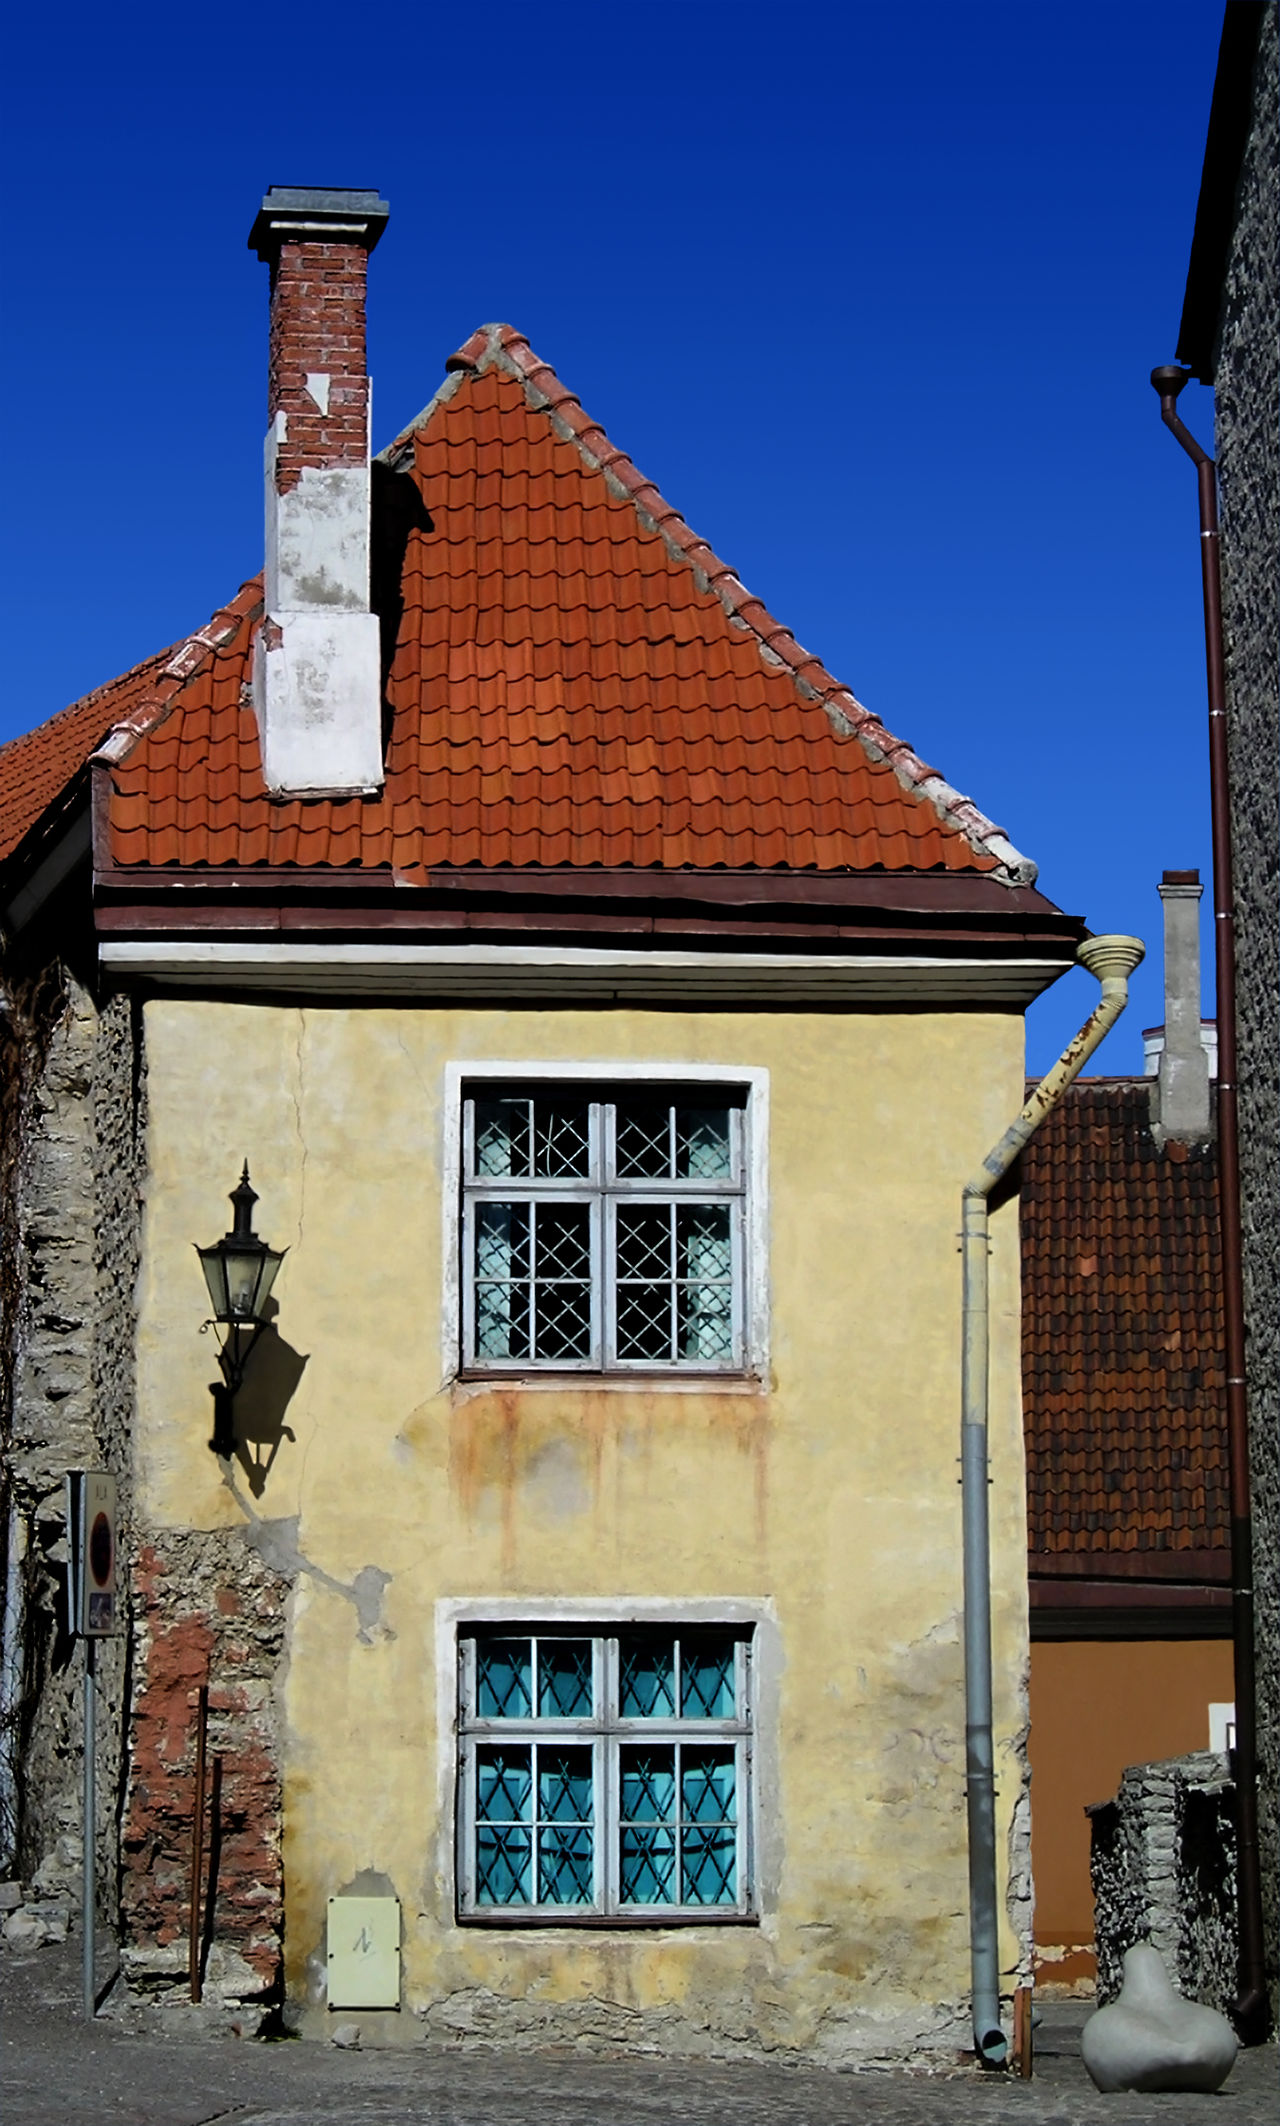 A run down house in the old town of Tallinn, Estonia with a statue of a duck next to it. Blue Sky Duck Statues Exposed Bricks House Run Down Places Tallinn Estonia Tallinn Old Town